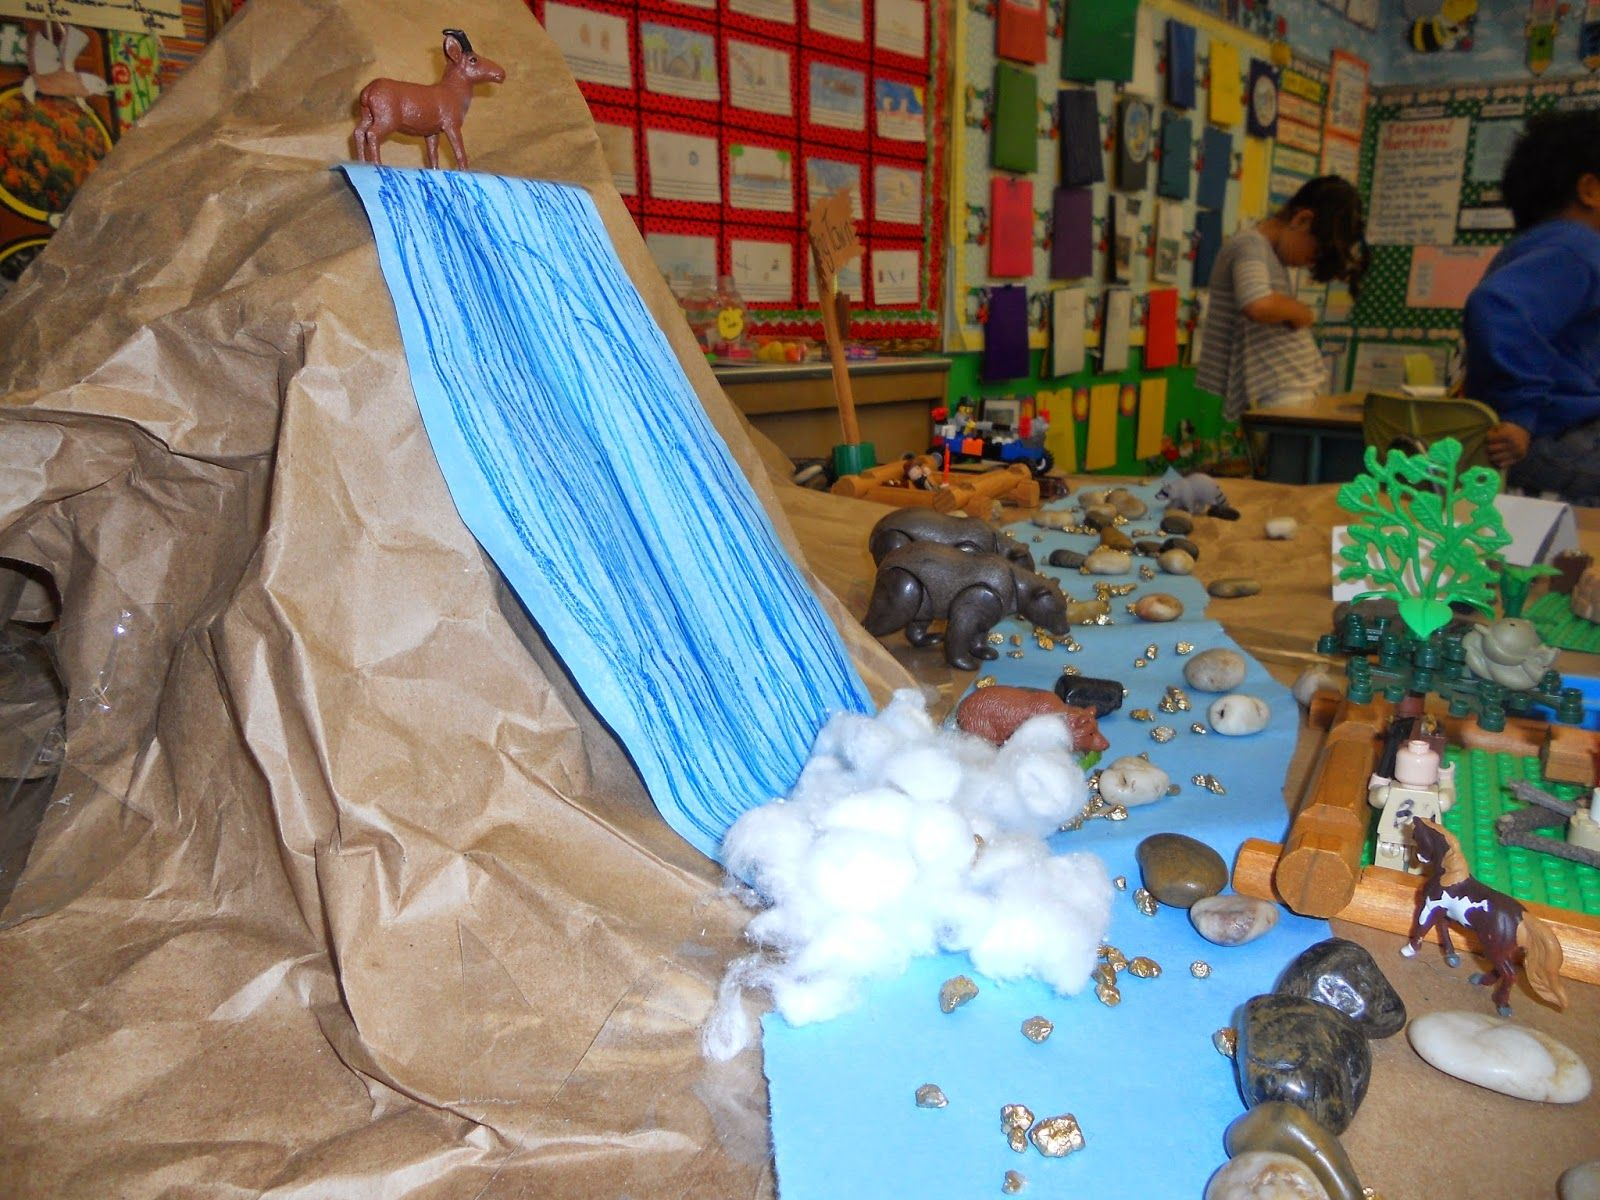 worksheet By The Great Horn Spoon Worksheets by the great horn spoon a california gold rush town diorama diorama